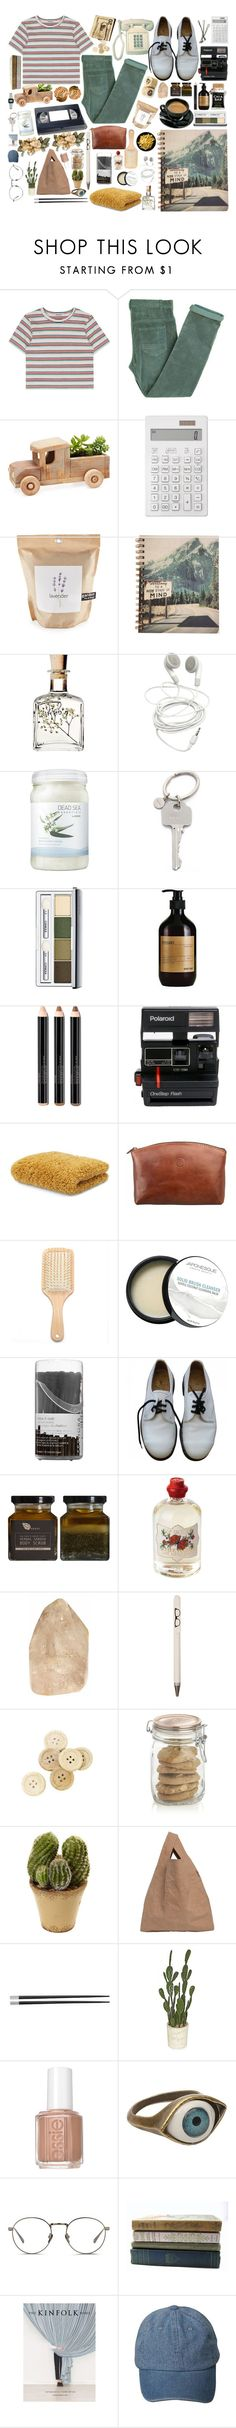 """""""State of mind."""" by anexushill ❤ liked on Polyvore featuring Laurence Doligé, Muji, Potting Shed Creations, Ahava, Paul Smith, Clinique, Smashbox, Polaroid, Abyss and Maxwell Scott Bags"""